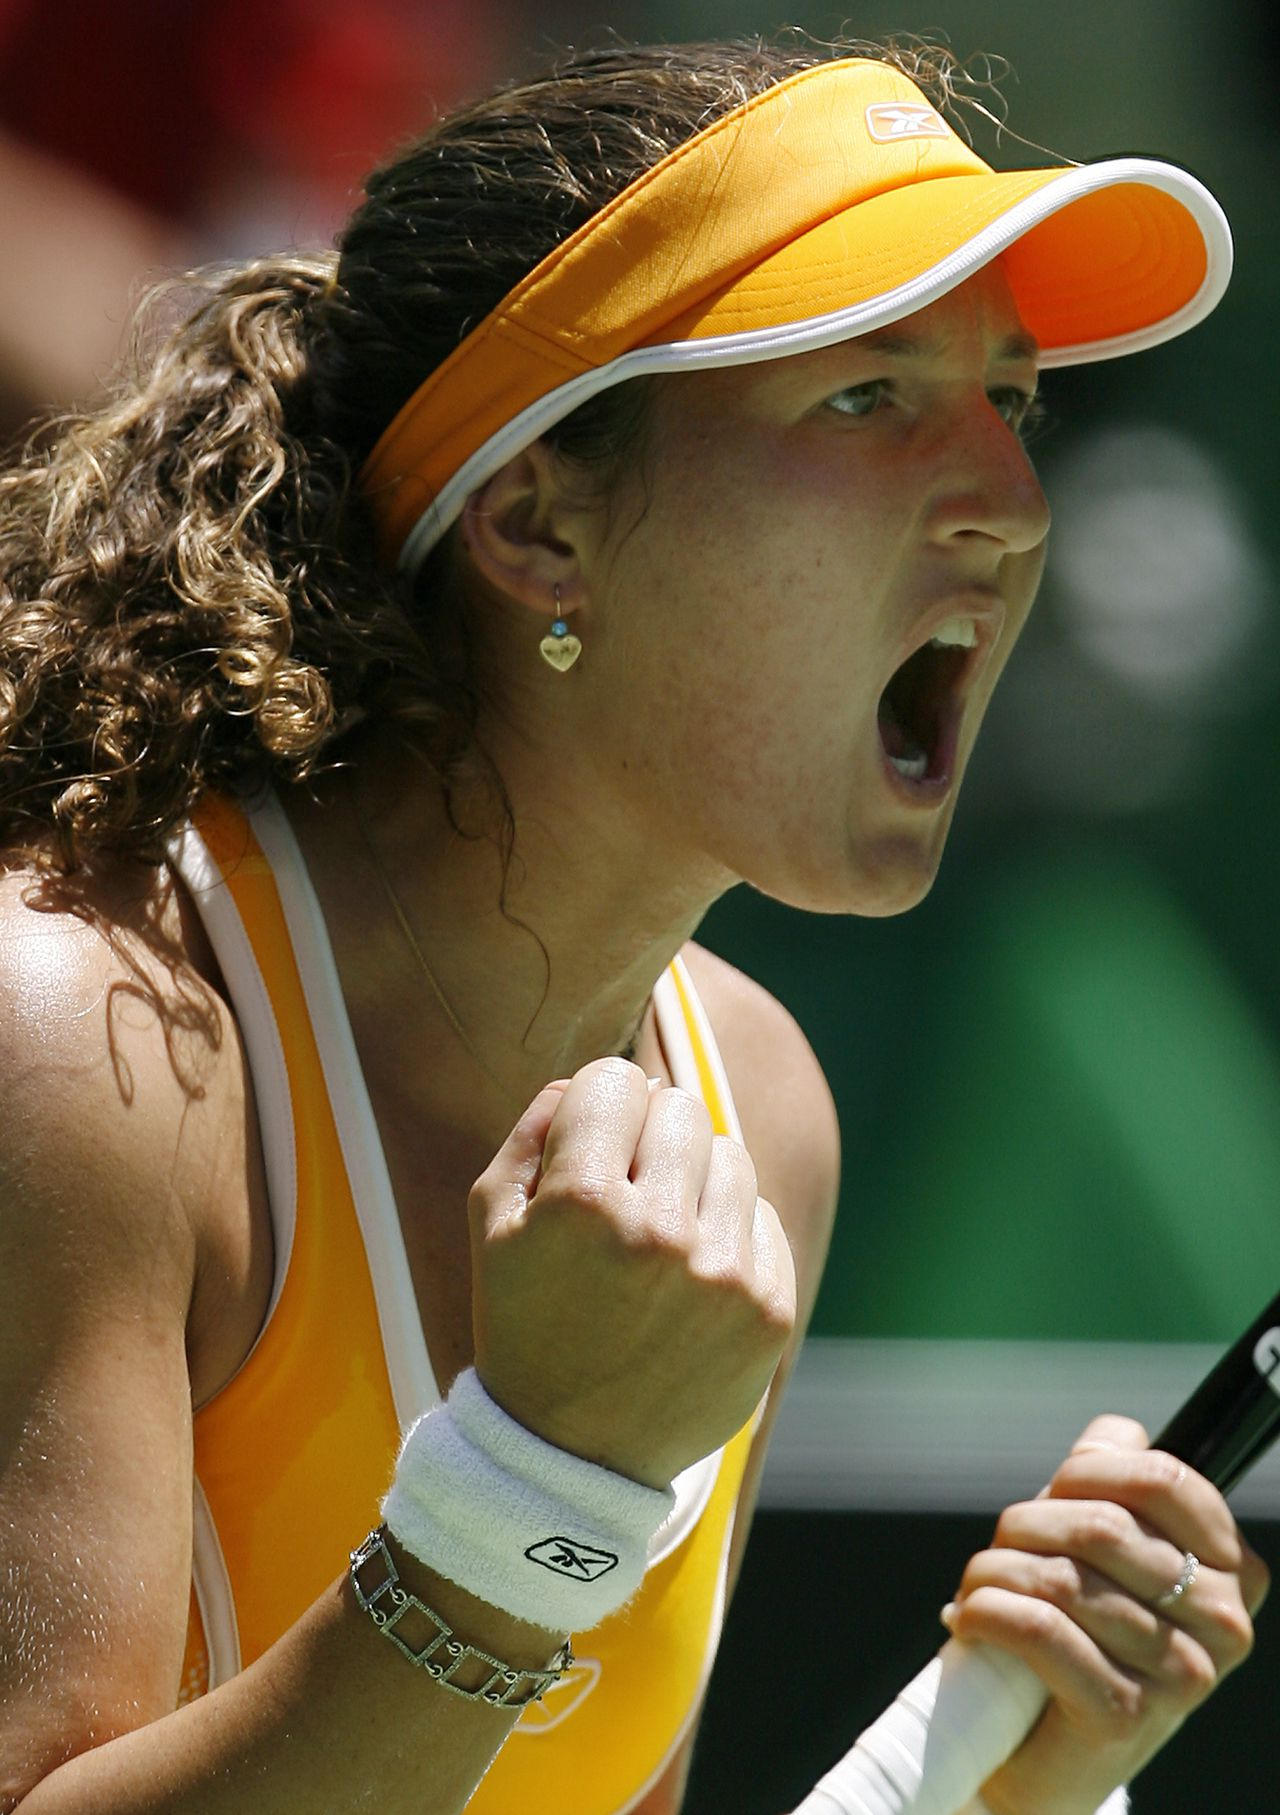 Shahar Peer Foto AFP Shahar Peer of Israel gestures after winning the first set in her women's singles quarter-final match against Serena Williams of the US at the Australian Open tennis tournament in Melbourne, 23 January 2007. Peer leads Williams by one set to nil as the match continues. AFP PHOTO/Greg WOOD